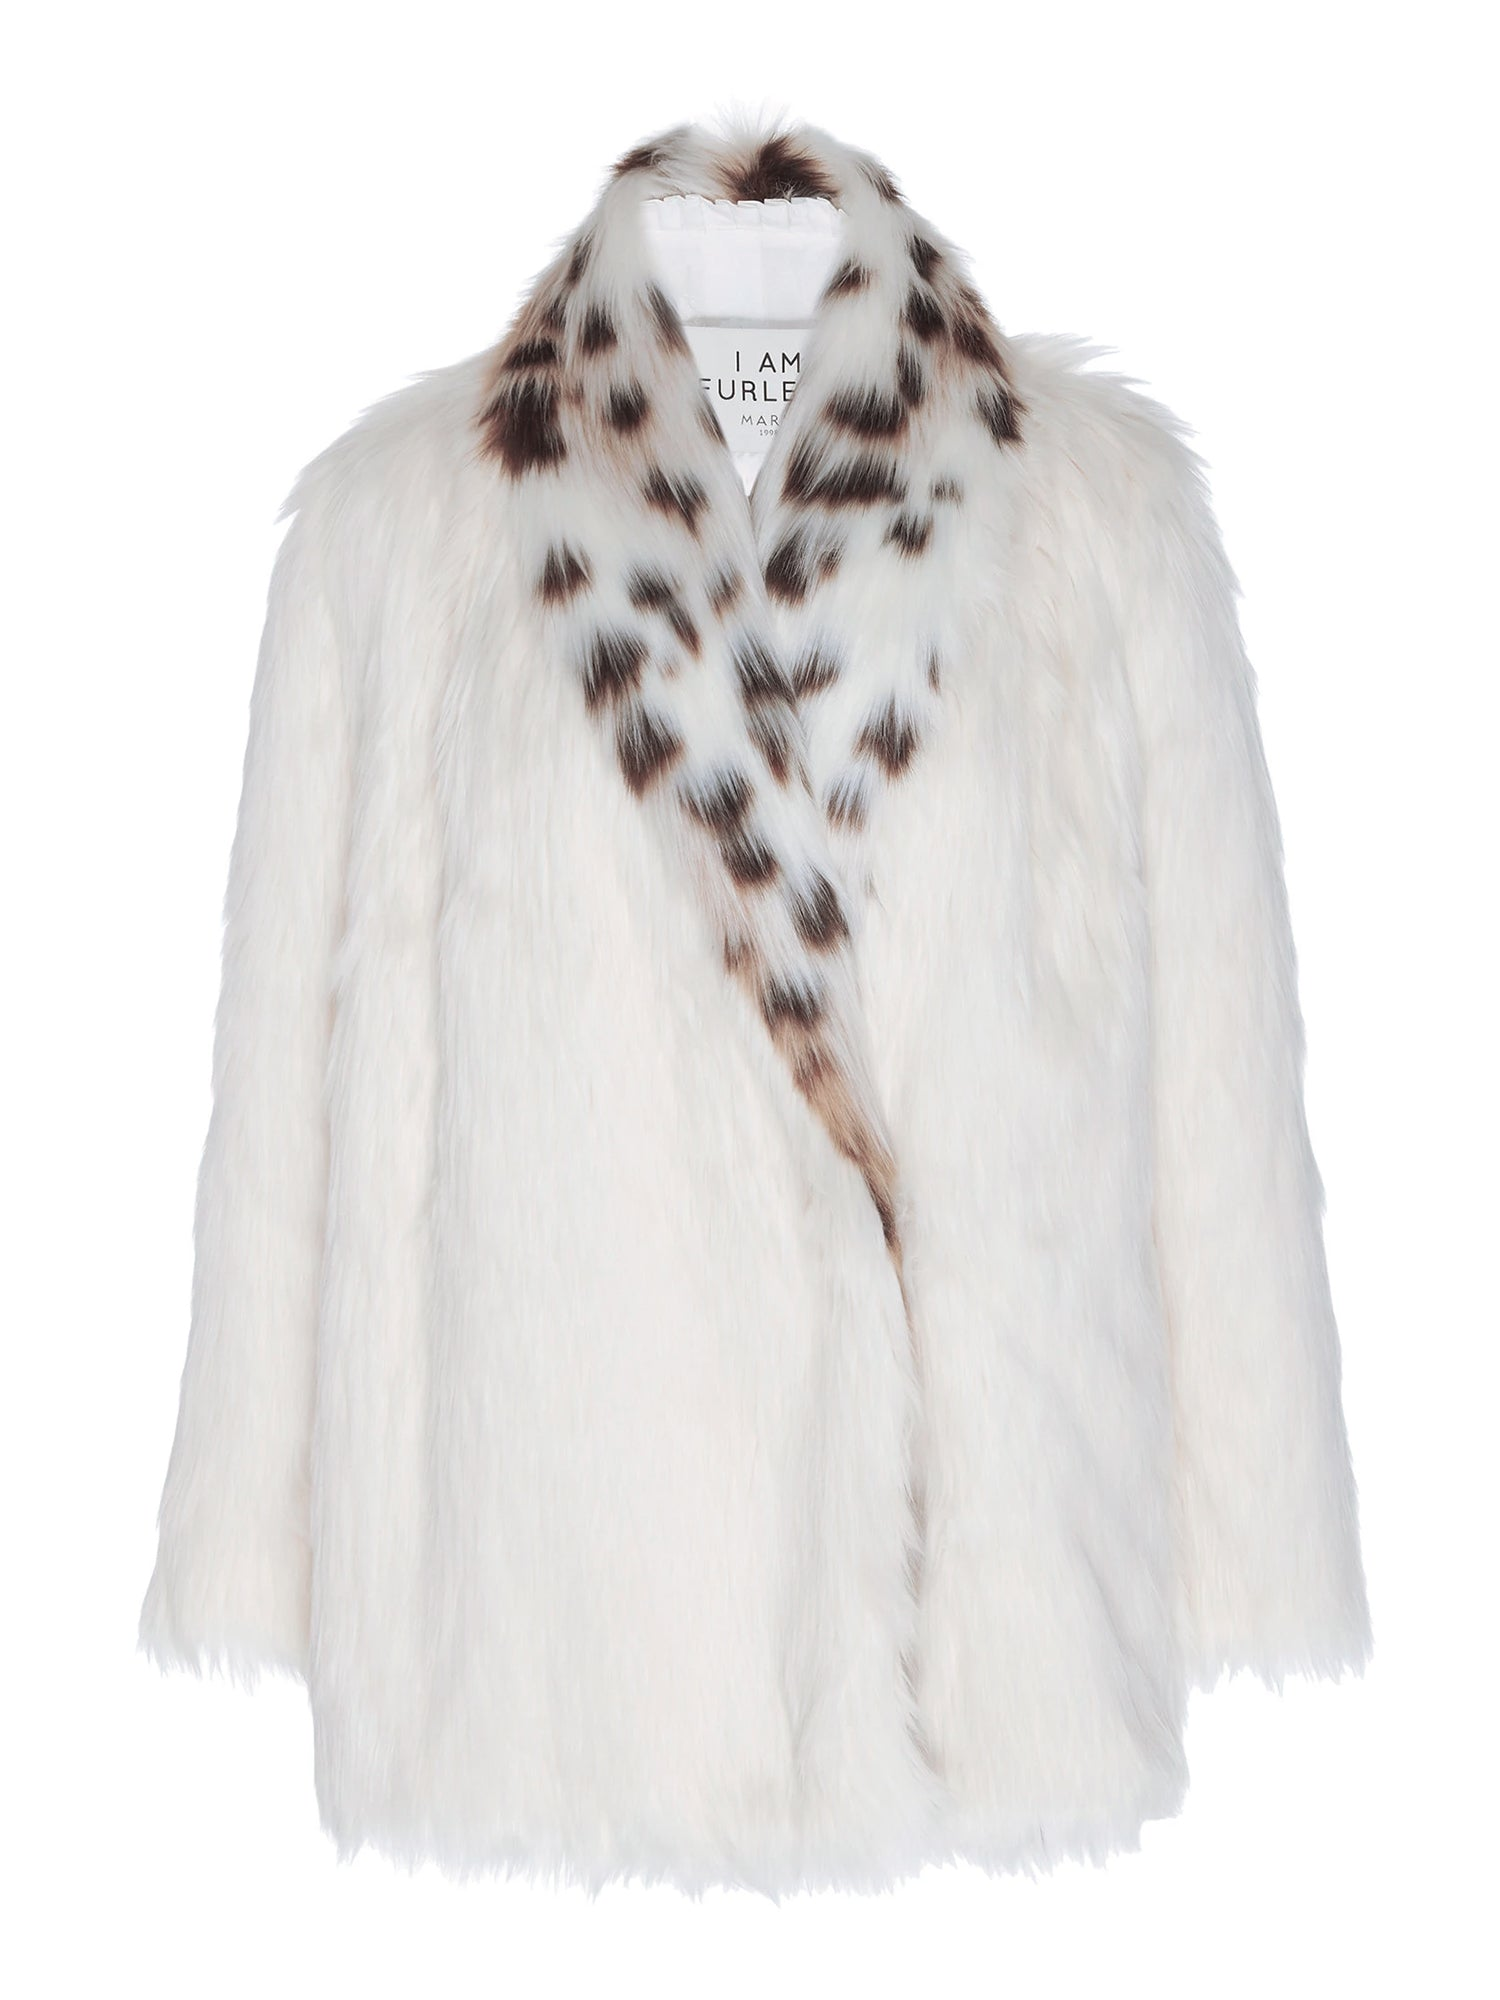 A Packshot Of Marei1998's Tiger Lily Faux Fur Coat In White Color. Featuring Spotted Design, Oversized Silhouette And Shawl Collar. Wardrobe Staple. Front View. Resort 2020 Collection - Furless Friendship.